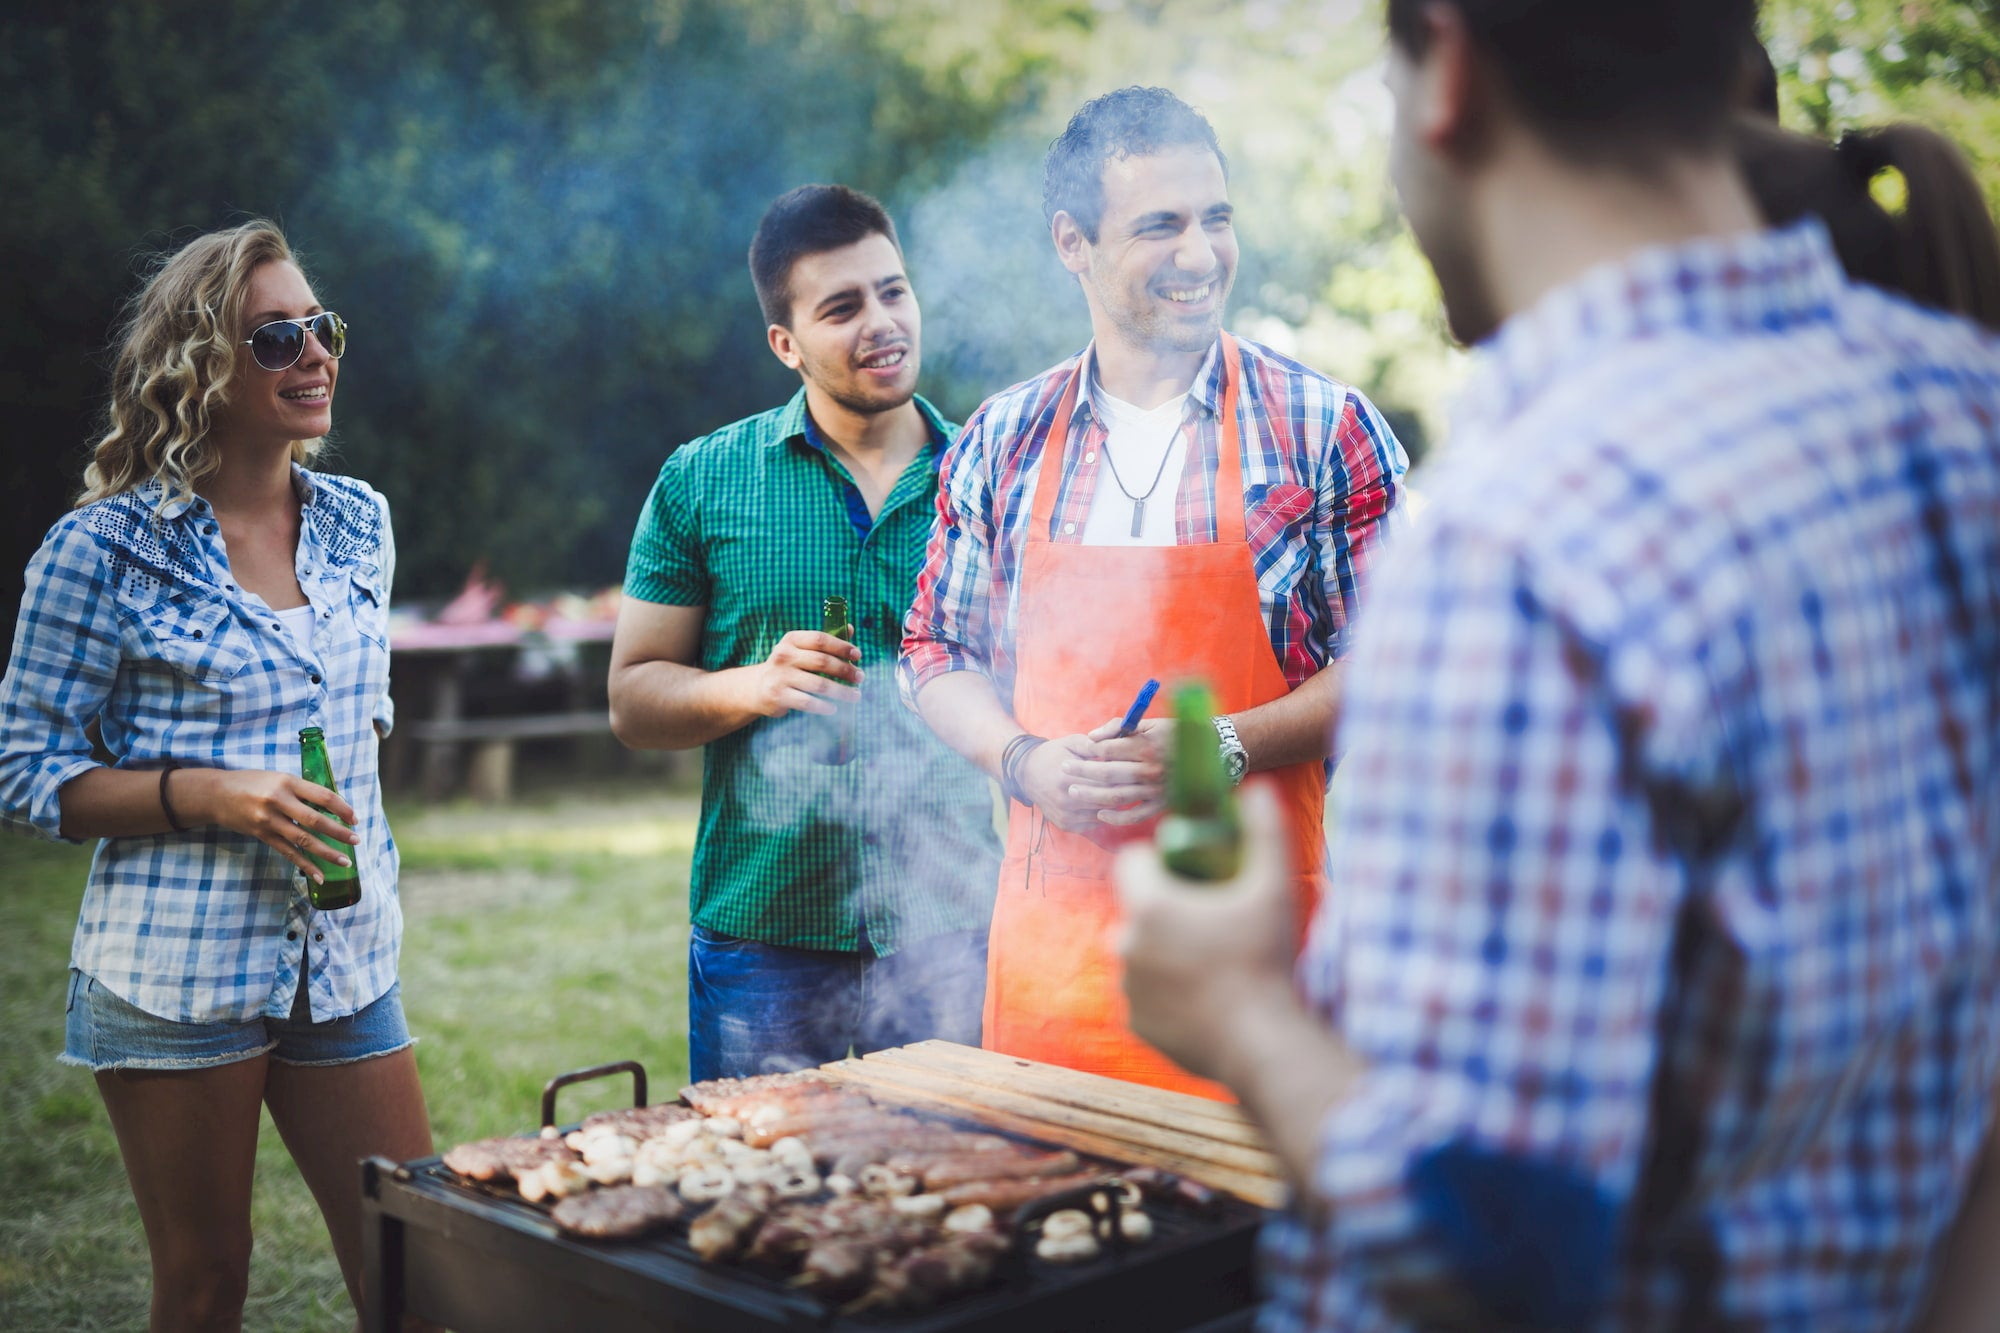 Friends around barbecue laughing